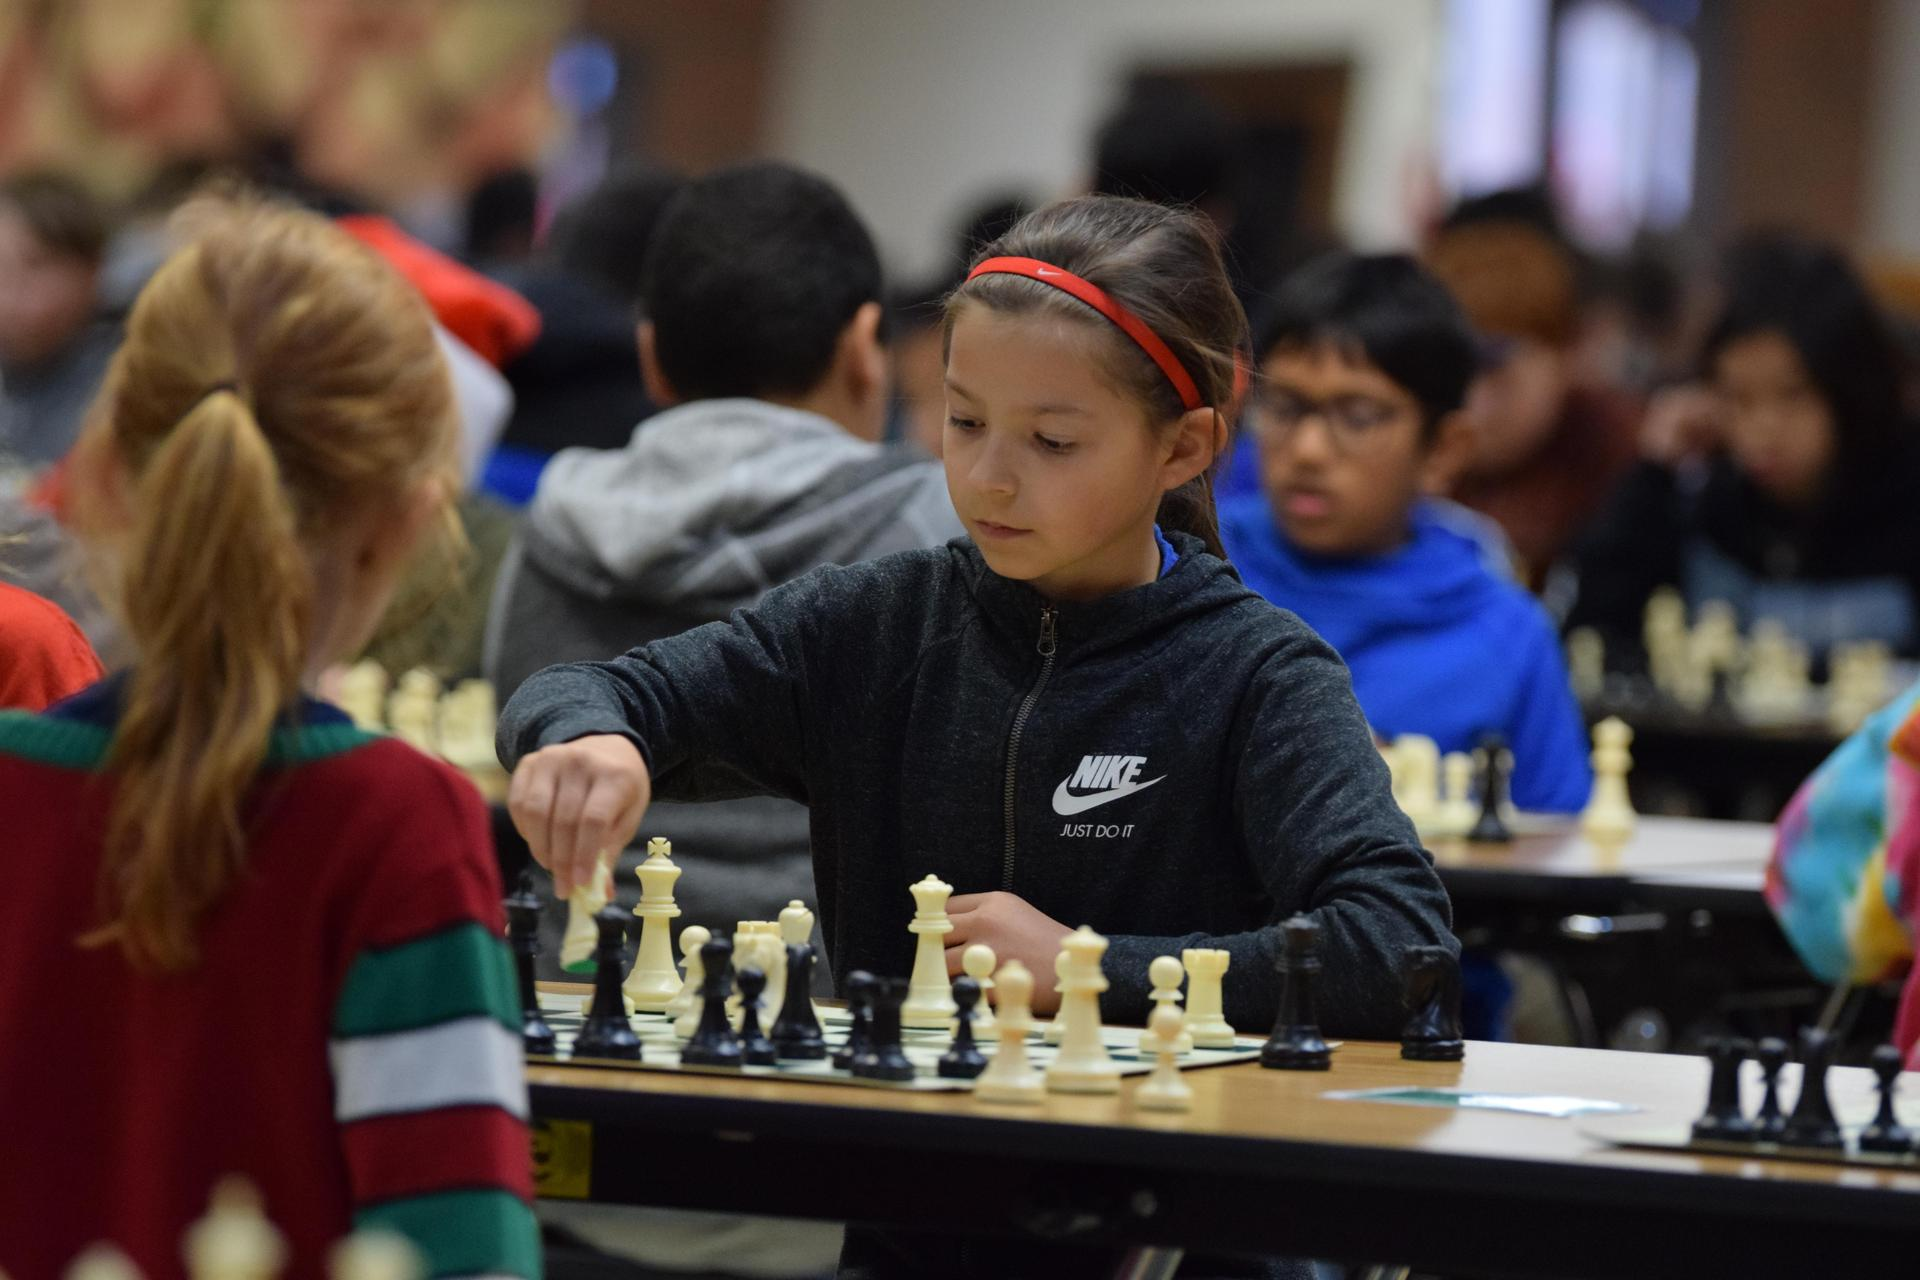 young girl making a move in chess